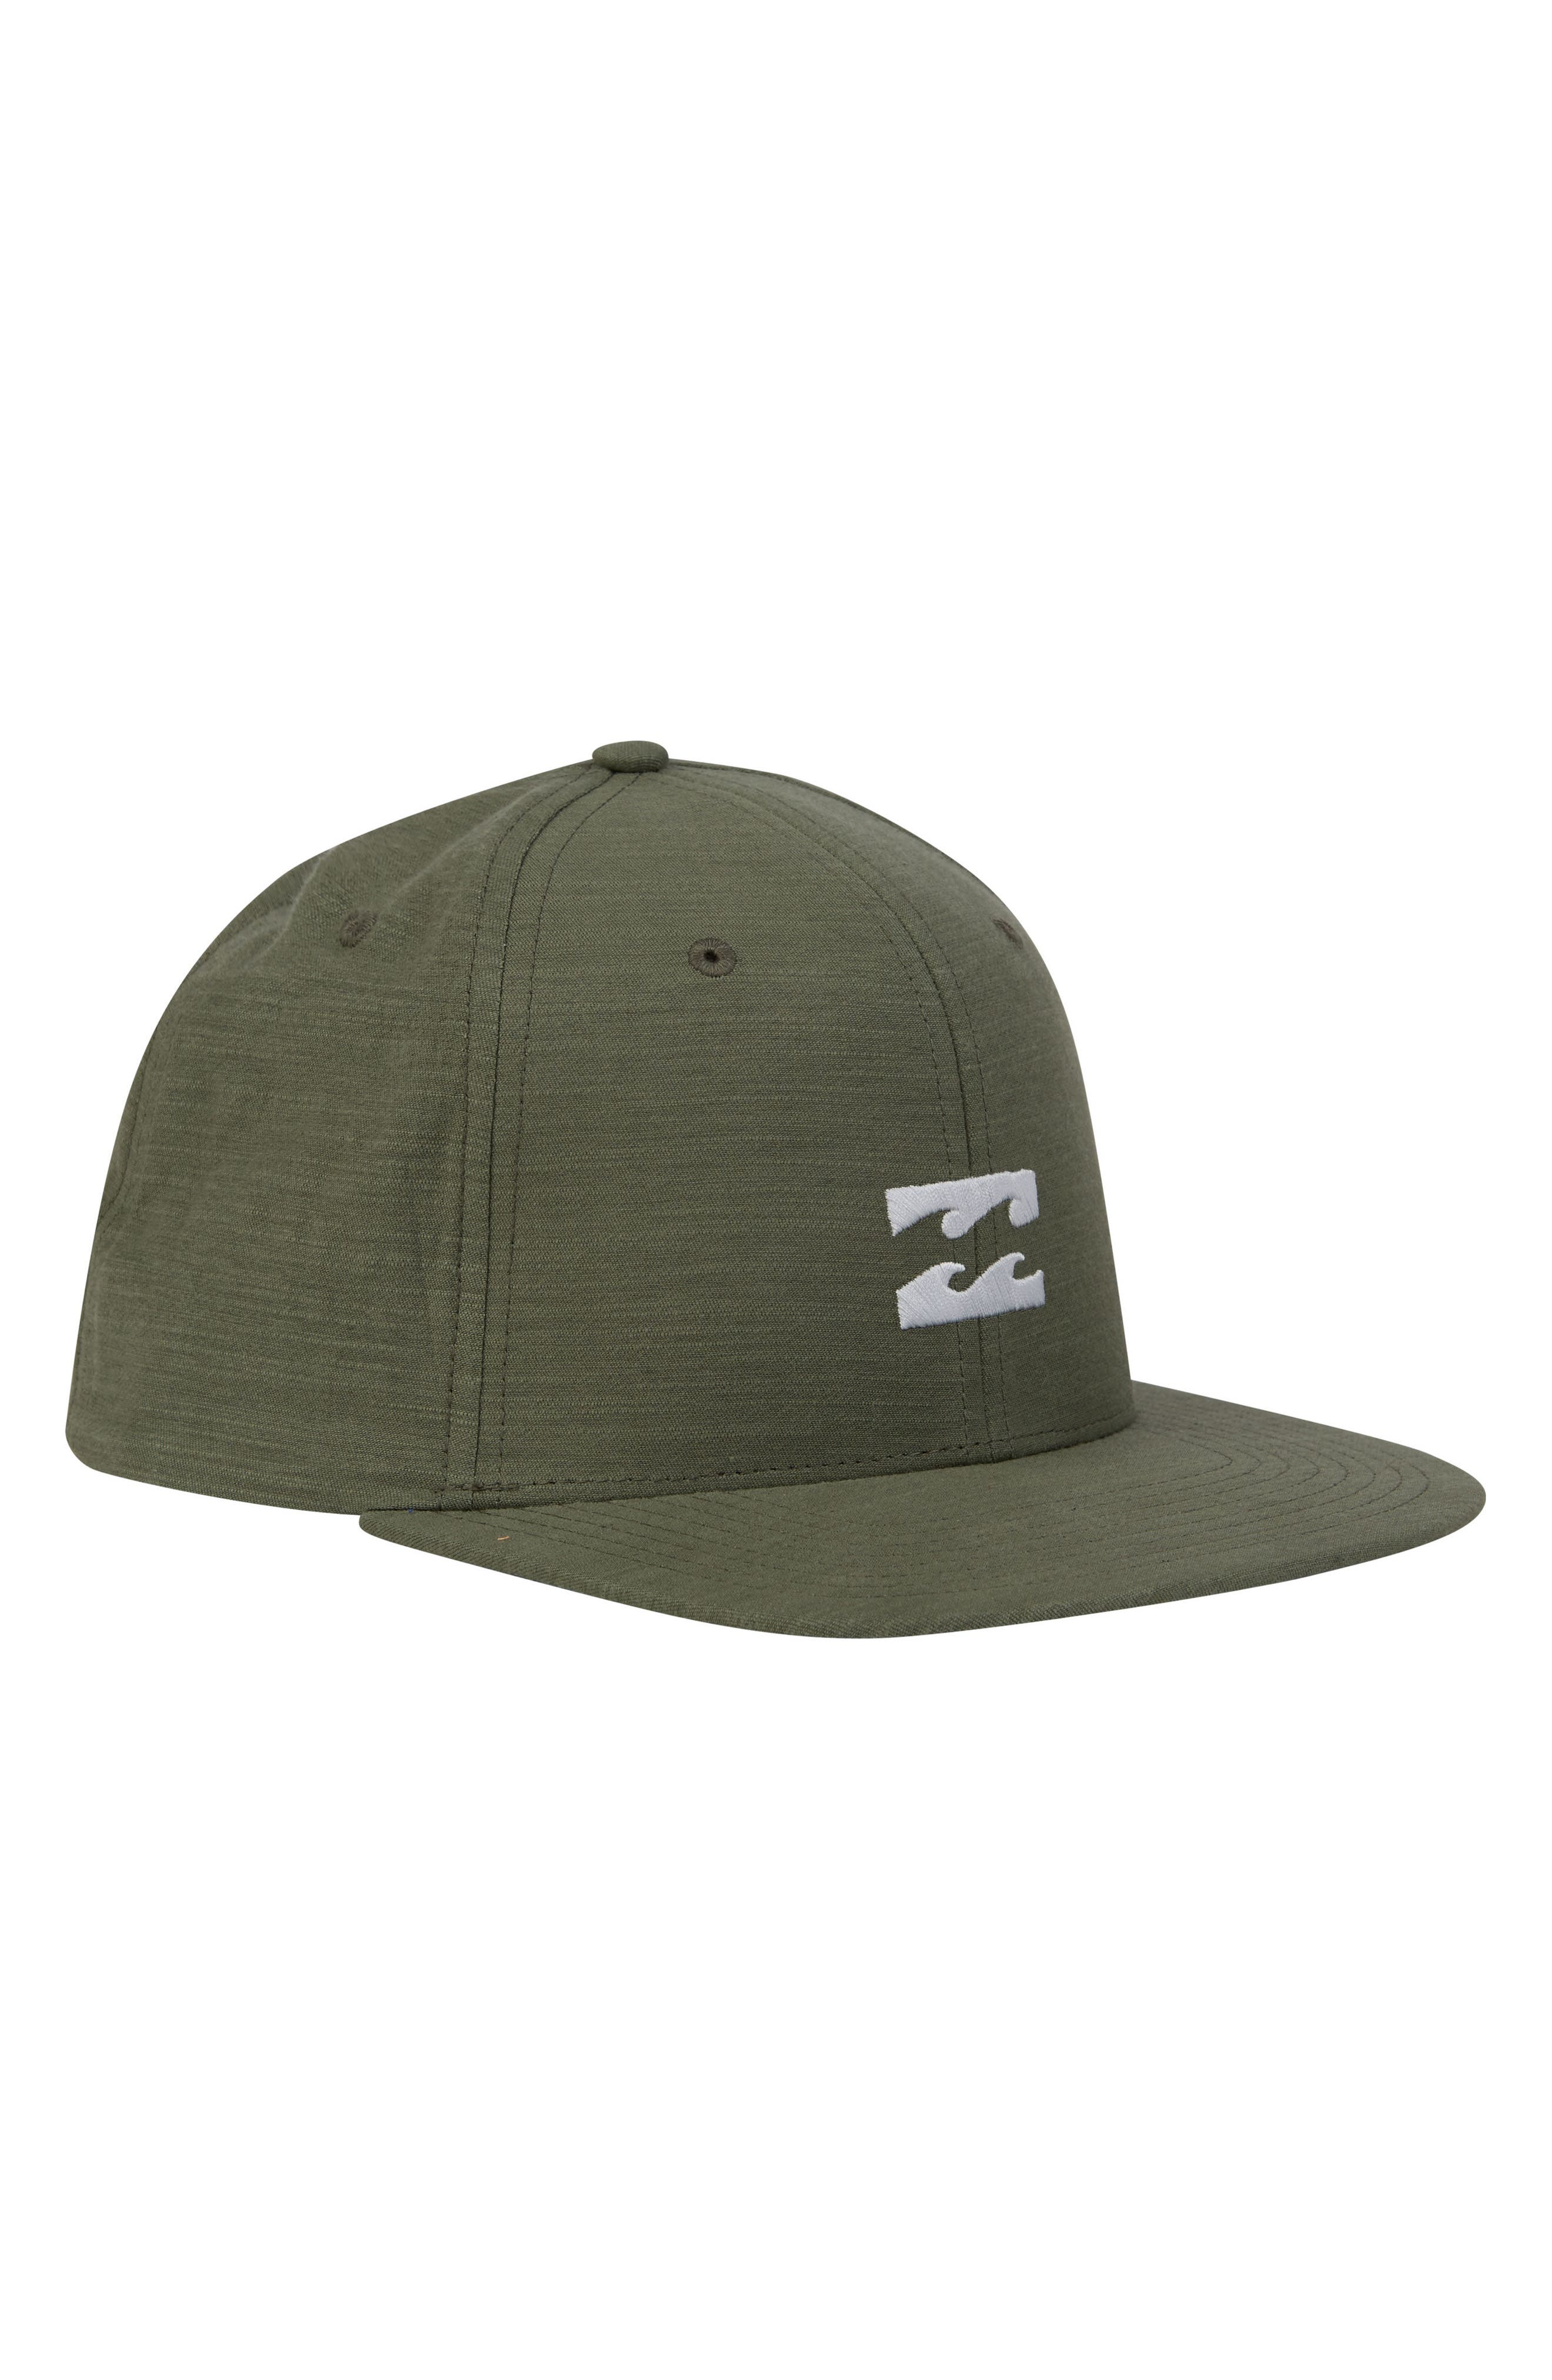 All Day Snapback Cap,                         Main,                         color, Green Heather